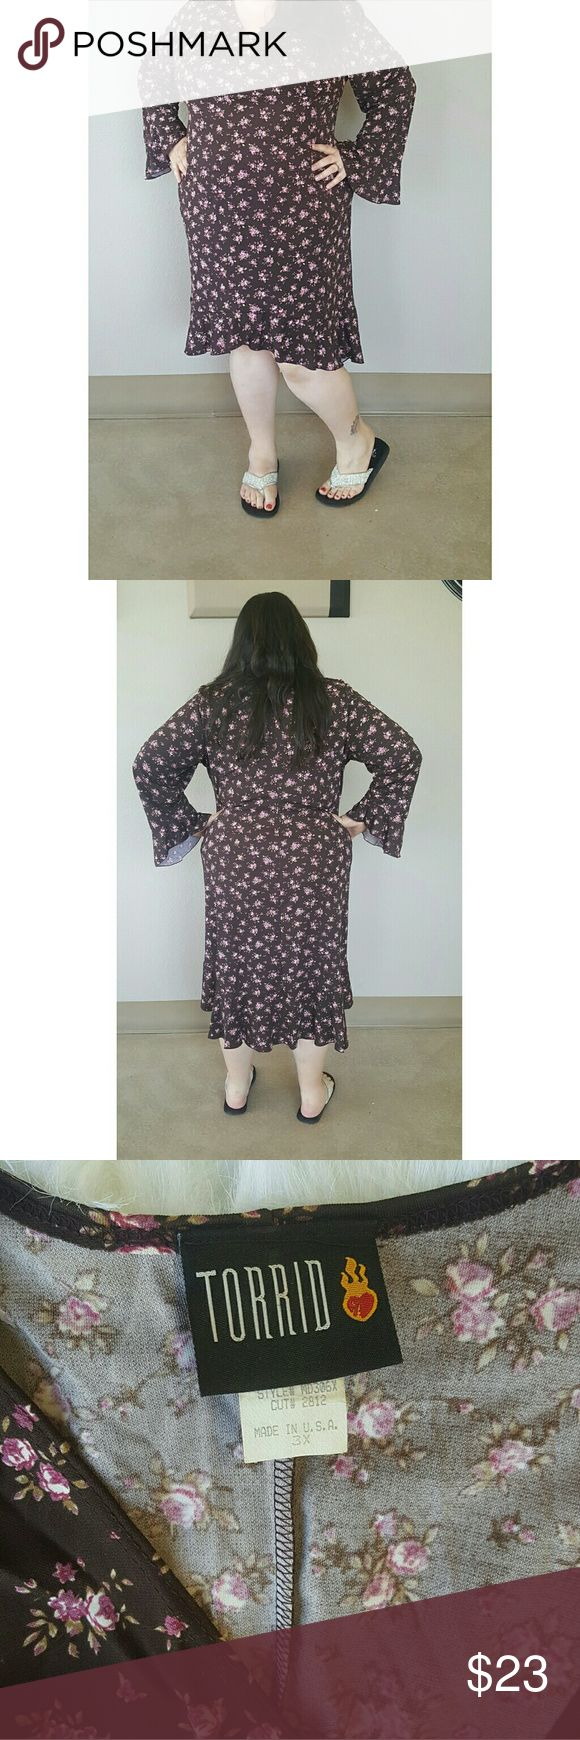 Boho Torrid Dress Gorgeous boho style dress. Torrid plus size 3X. Super flattering. Trendy bell sleeve, floral pattern and high low hem. Older Torrid but in great used condition. Perfect for spring and summer and festivals! torrid Dresses